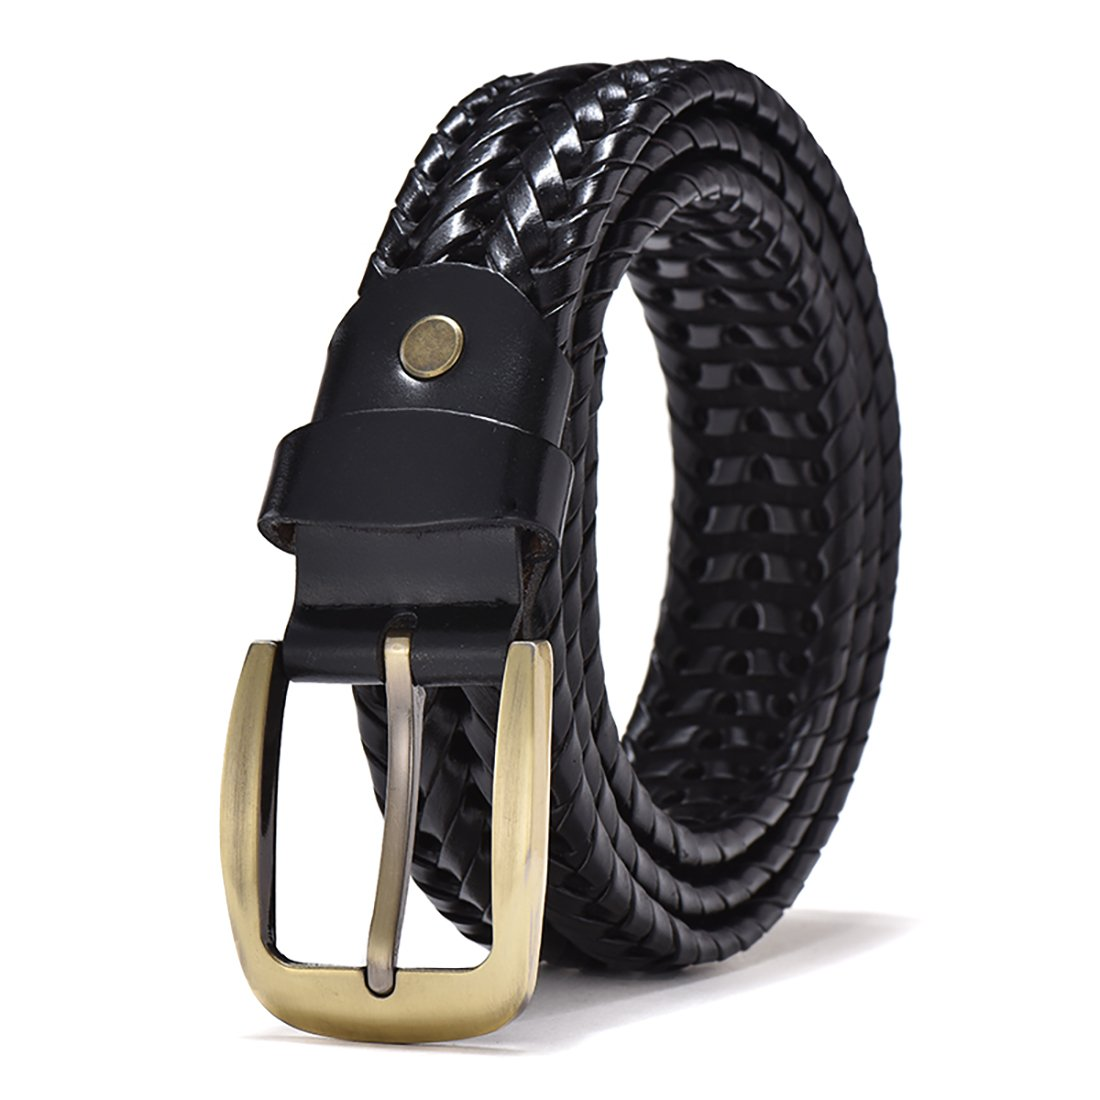 PAKULOVE Men's Braided Belt Genuine Leather Strap for Jeans (Black, waist:31-33)